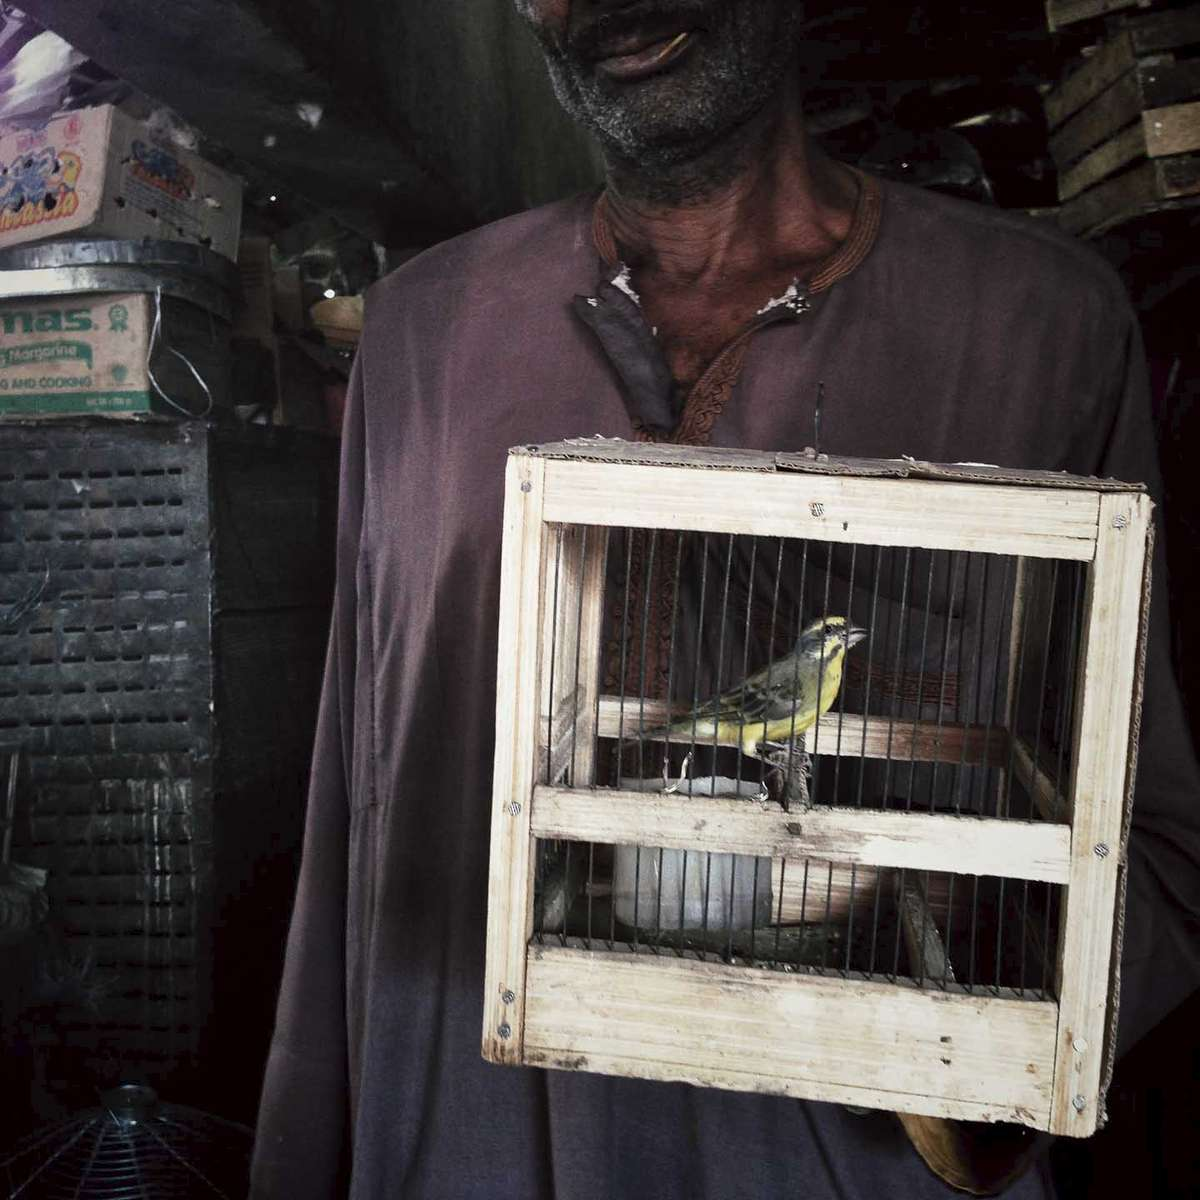 Bird in a cage at a market in Kano, Northern Nigeria. March 2014.